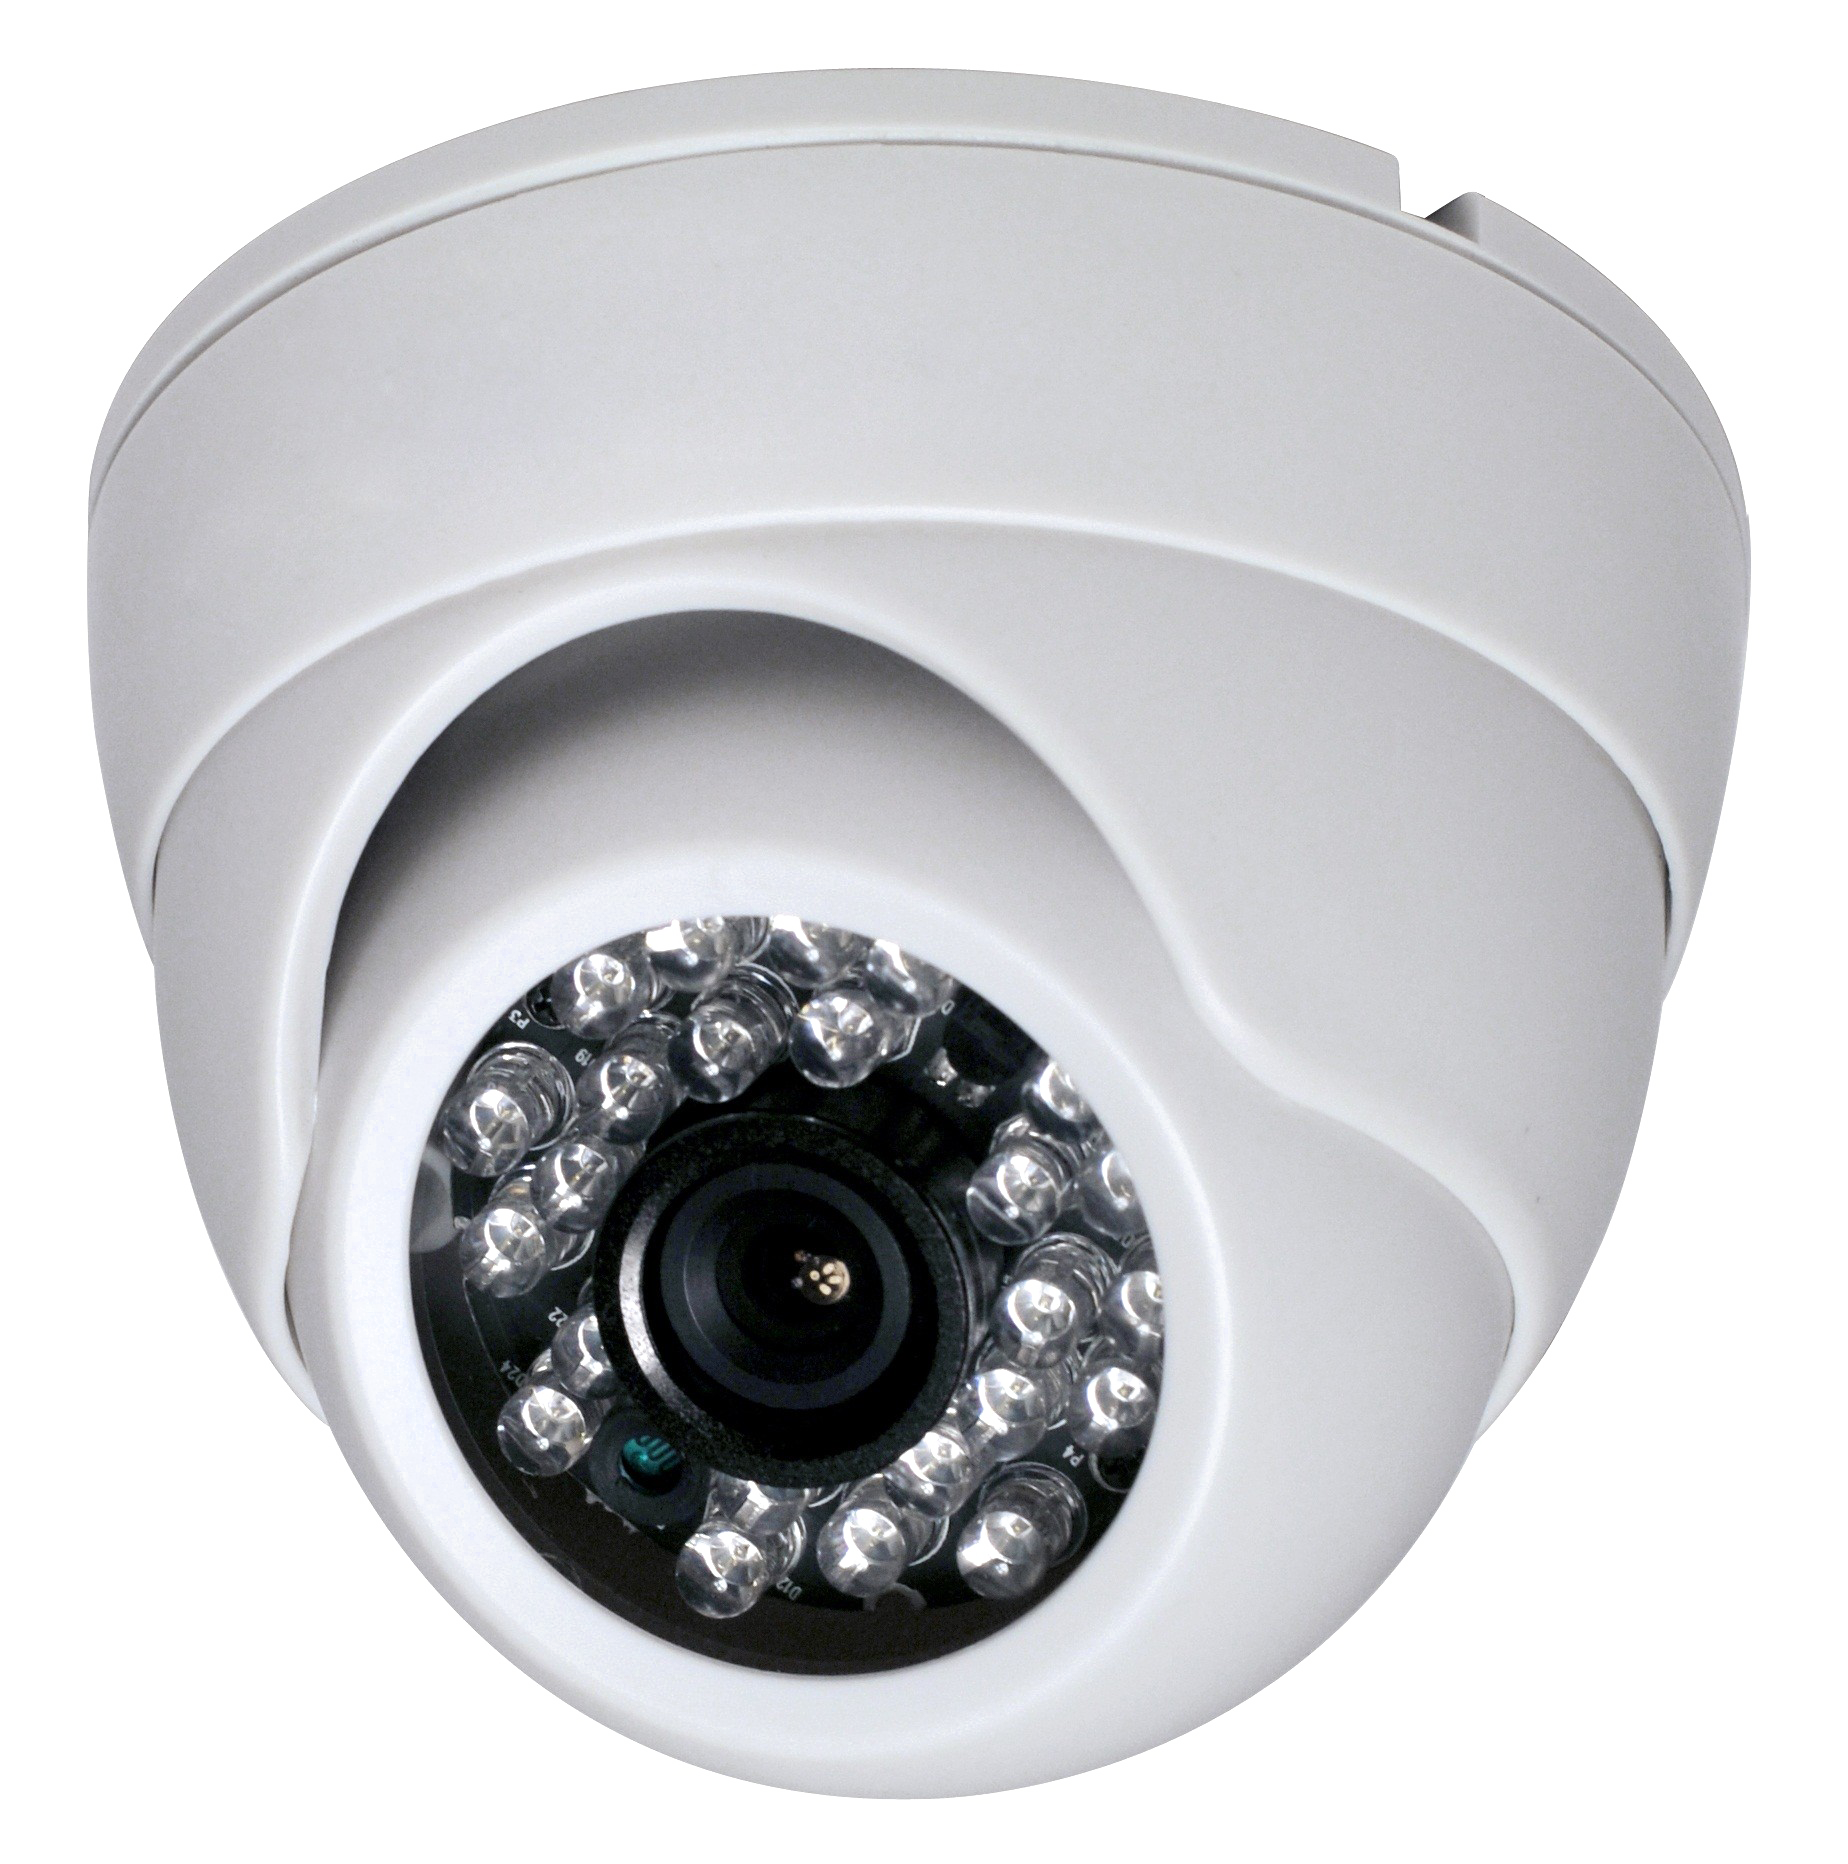 CCTV Camera PNG Images Transparent Free Download.